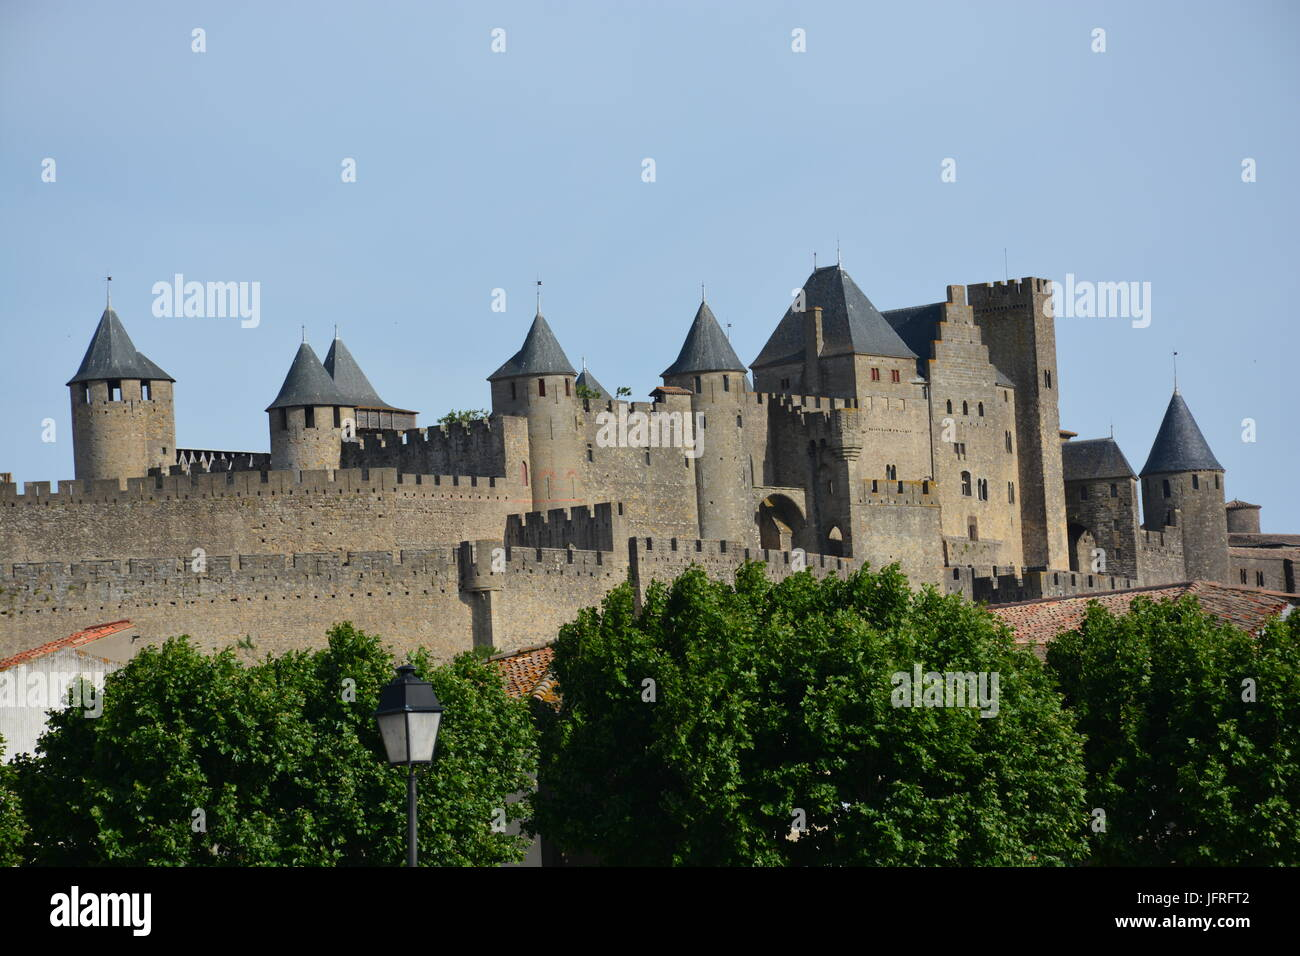 The medieval city of Carcassone, Occitanie, France - Stock Image